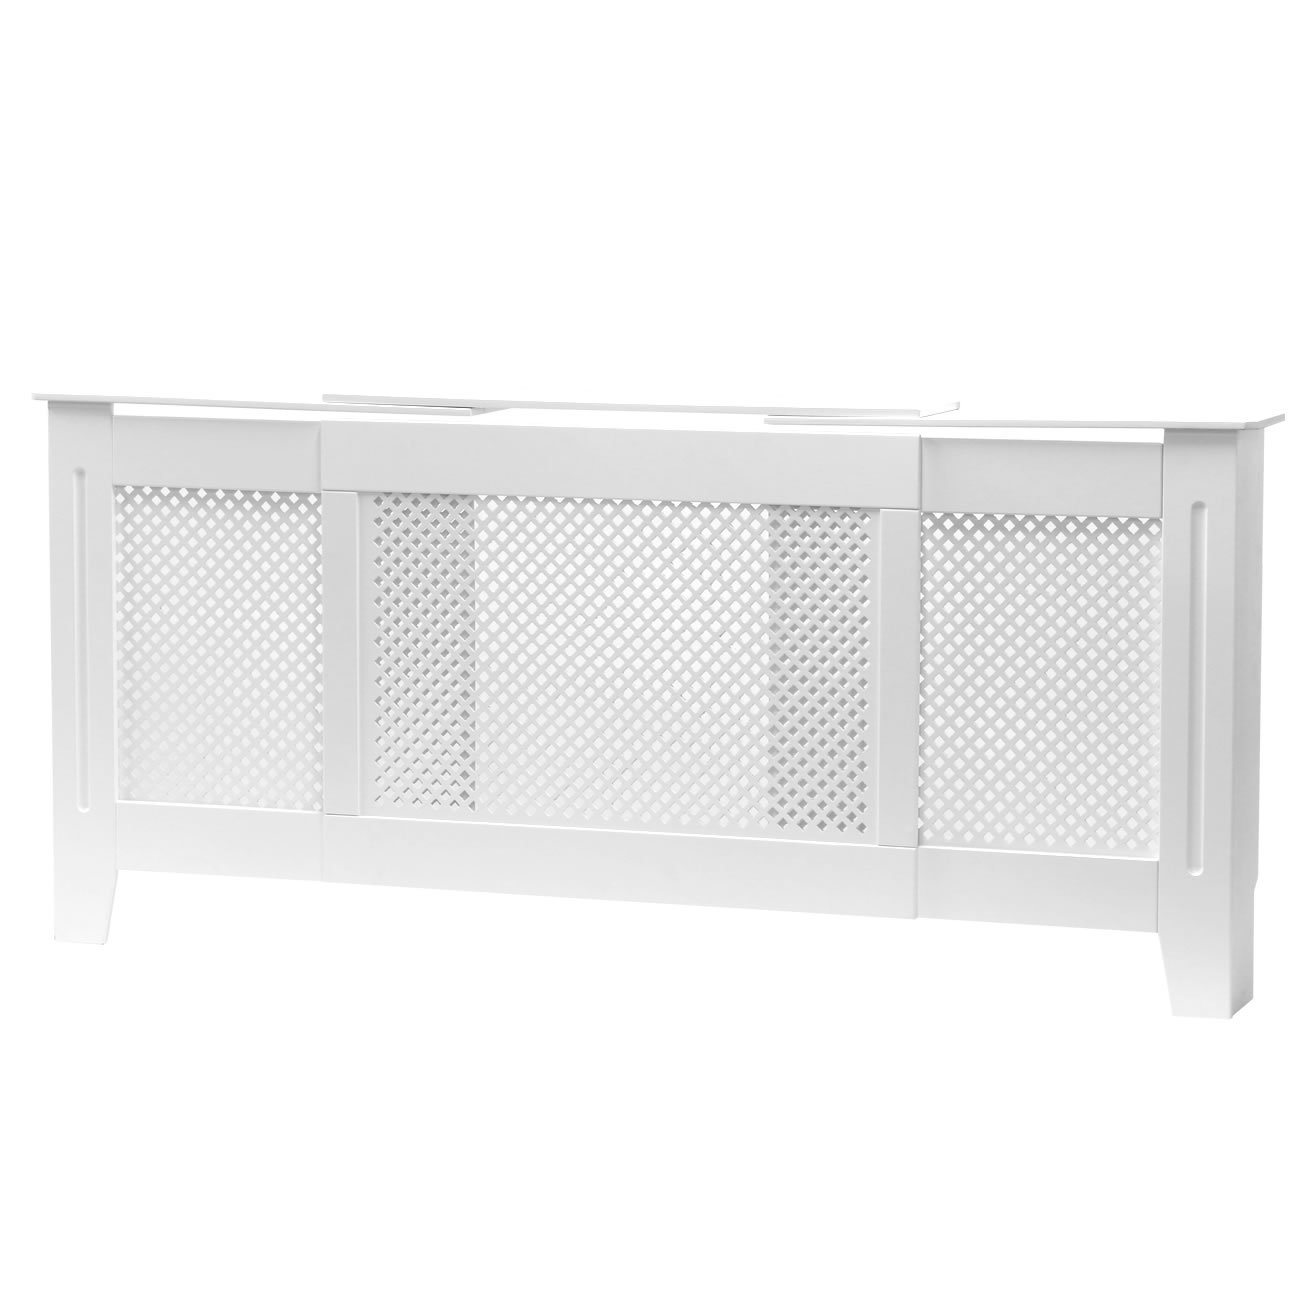 FOREST Radiator Cover Cabinet MDF WHITE Painted,Adjustable Size Diamond Grill ForestAV